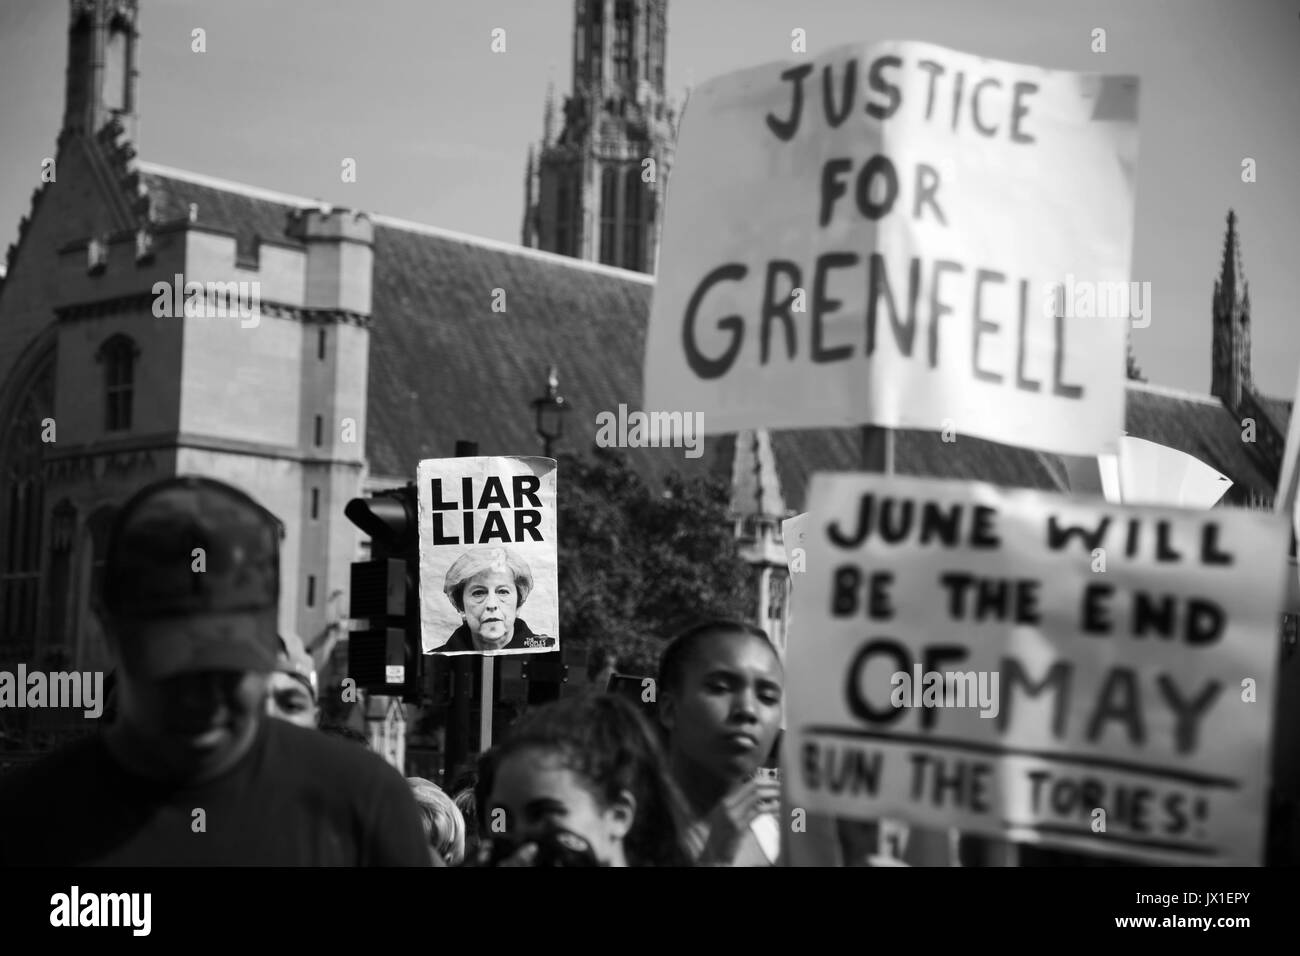 The Day of Rage protest organised by Movement for Justice  went from Shepherd's Bush to Downing Street and Parliament Square June 21st 2017, London, U - Stock Image